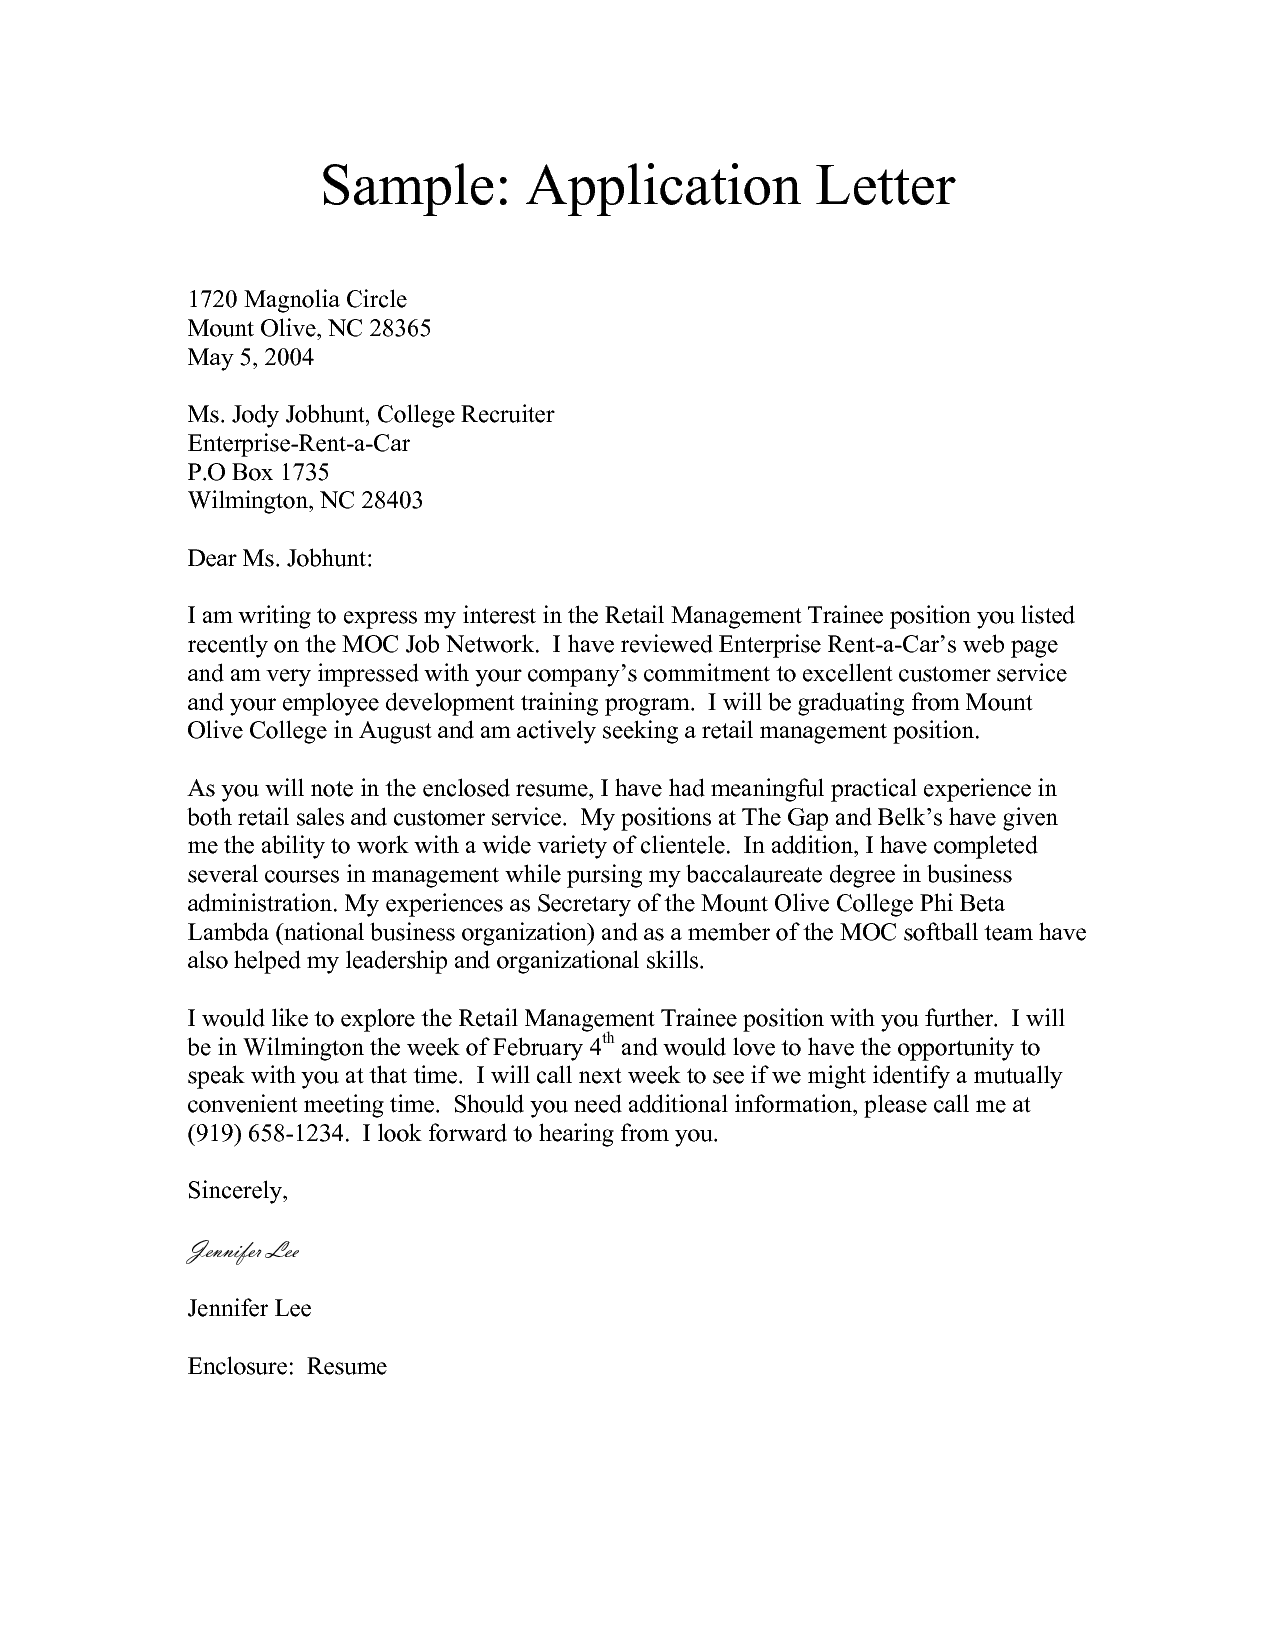 Application covering letter application letter pinterest application covering letter spiritdancerdesigns Images